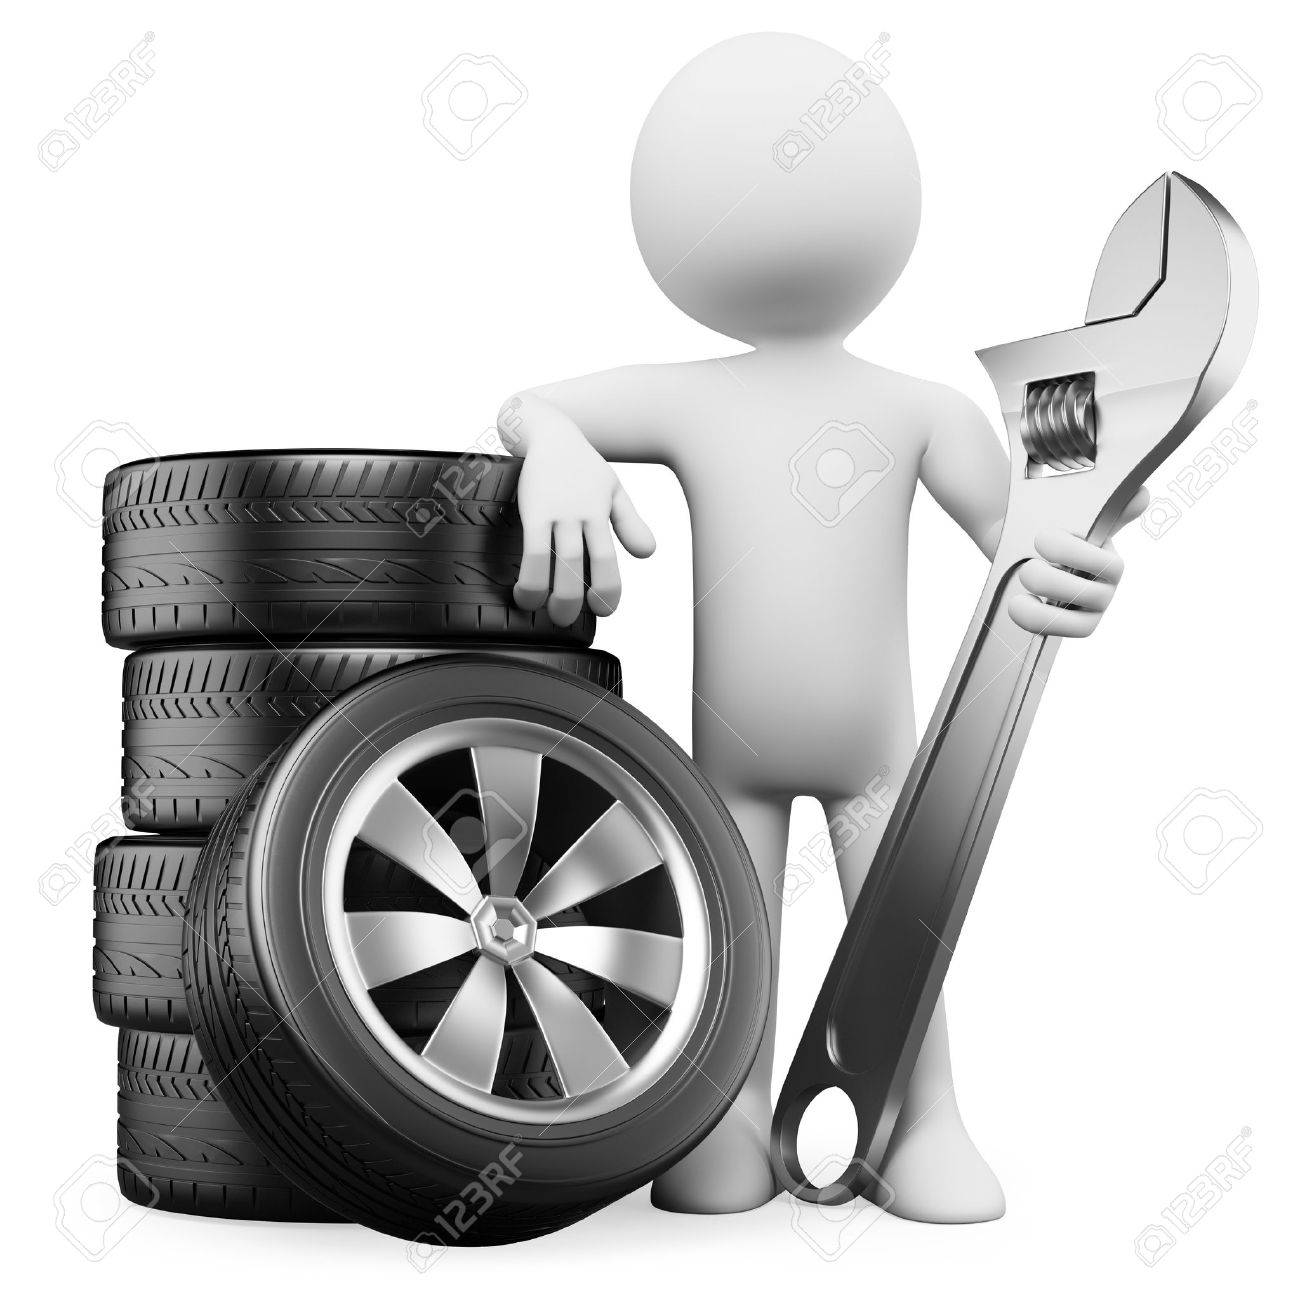 3d white person with tires and a wrench. 3d image. Isolated white background. Stock Photo - 14017937